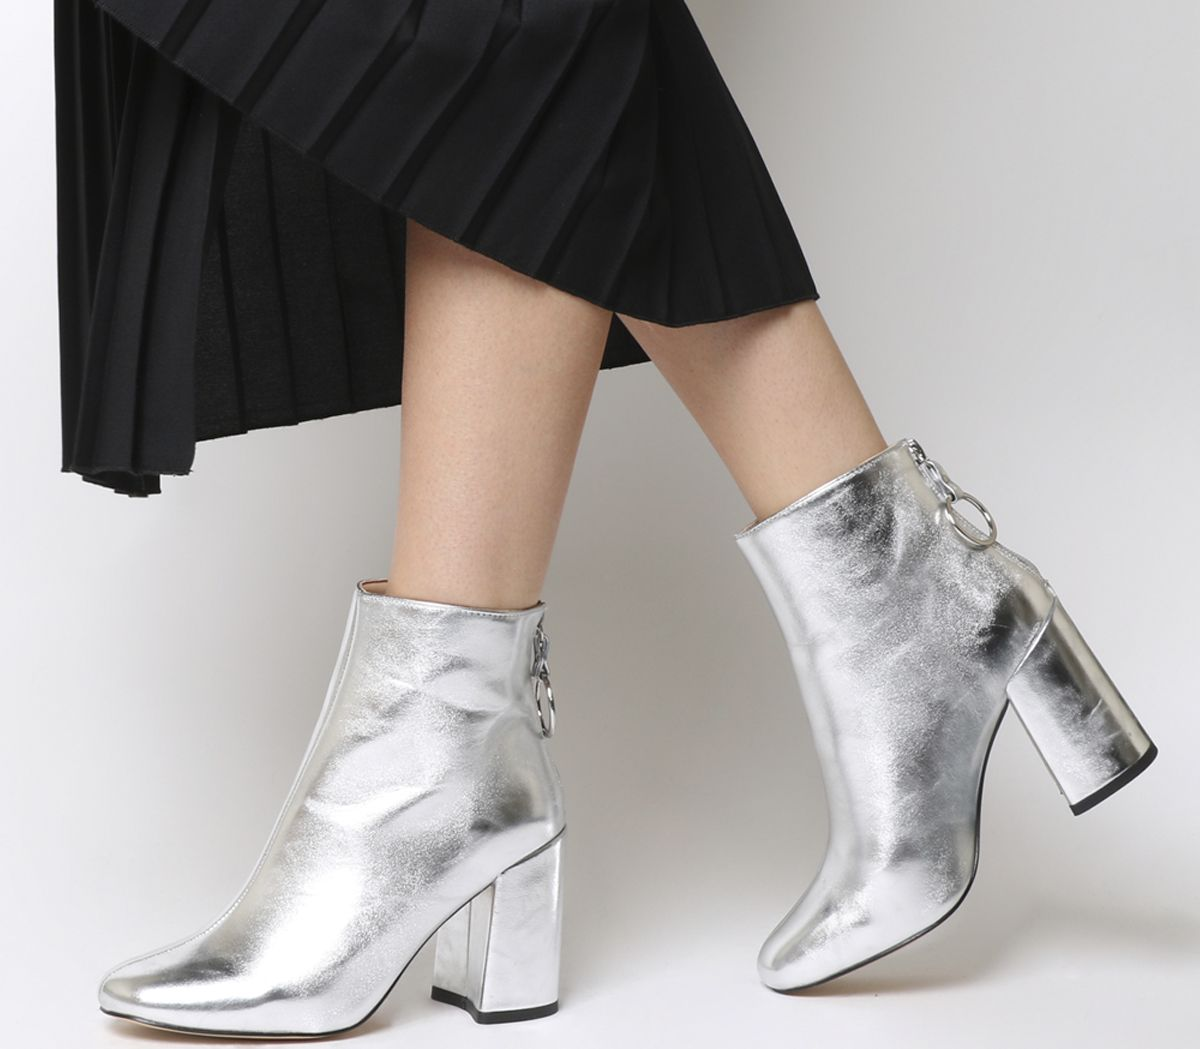 bb6dc1cbb00 Office Argon Block Heel Back Zip Boots Silver Metallic - Ankle Boots